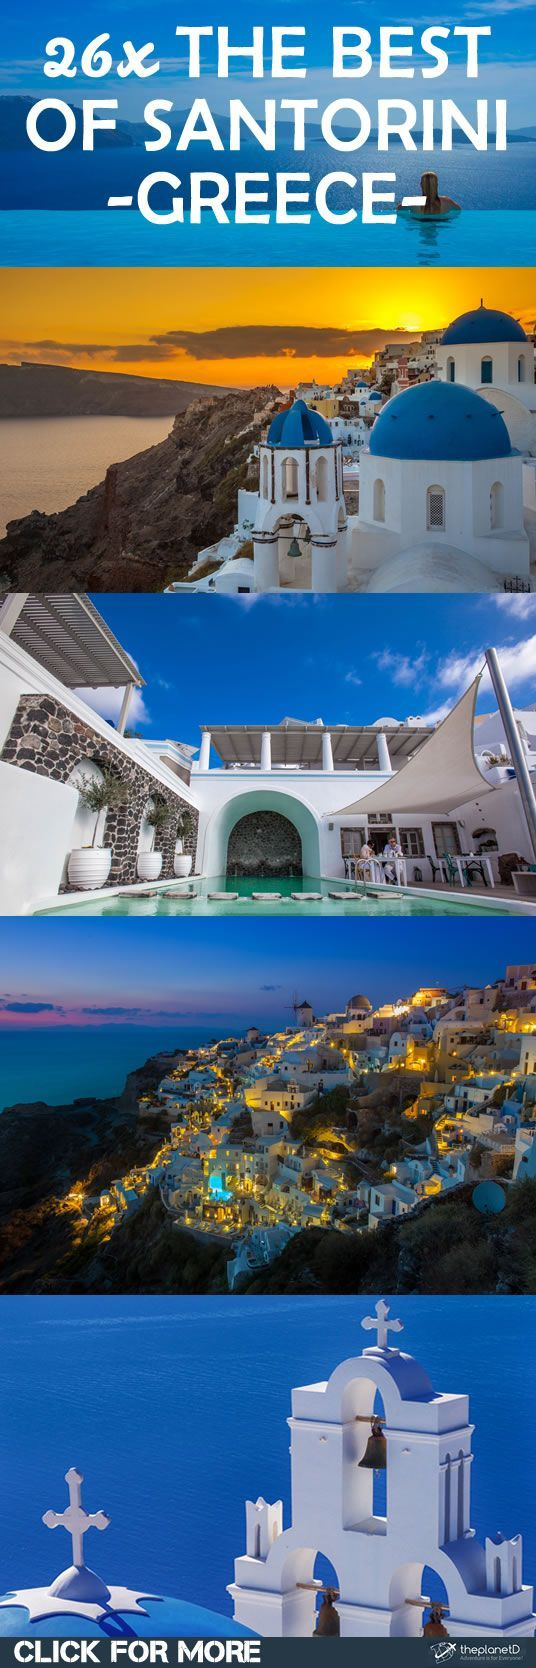 Santorini Greece is truly a magical destination, especially when you visit in the off season. We fell in love with Santorini during our seven-day escape. See all travel photos here: >